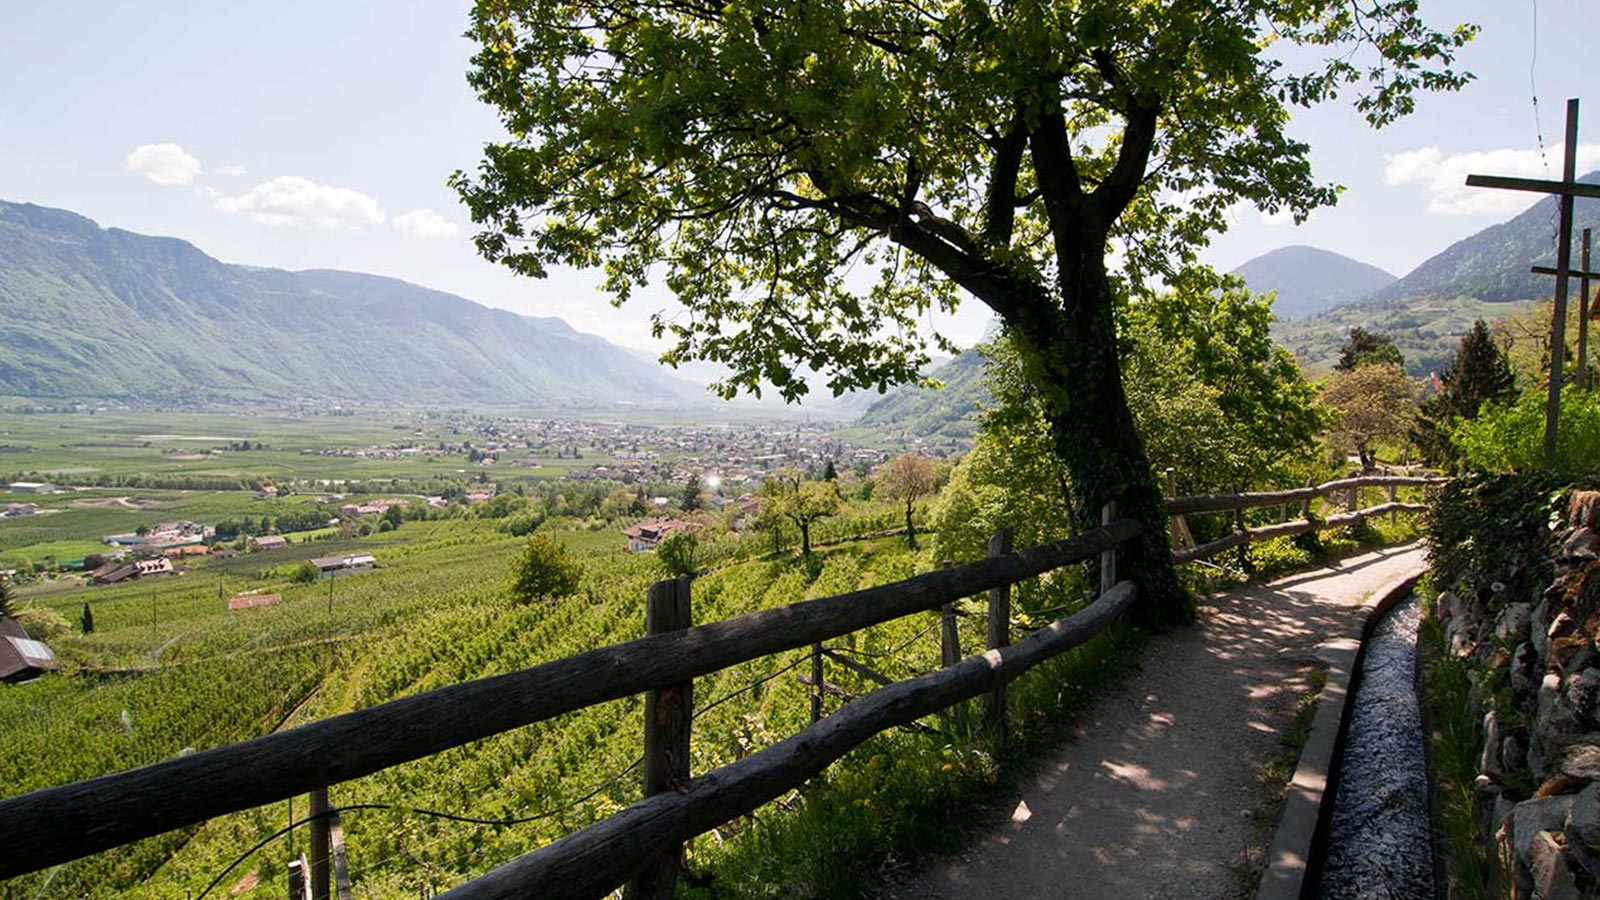 Trail with a view of Merano